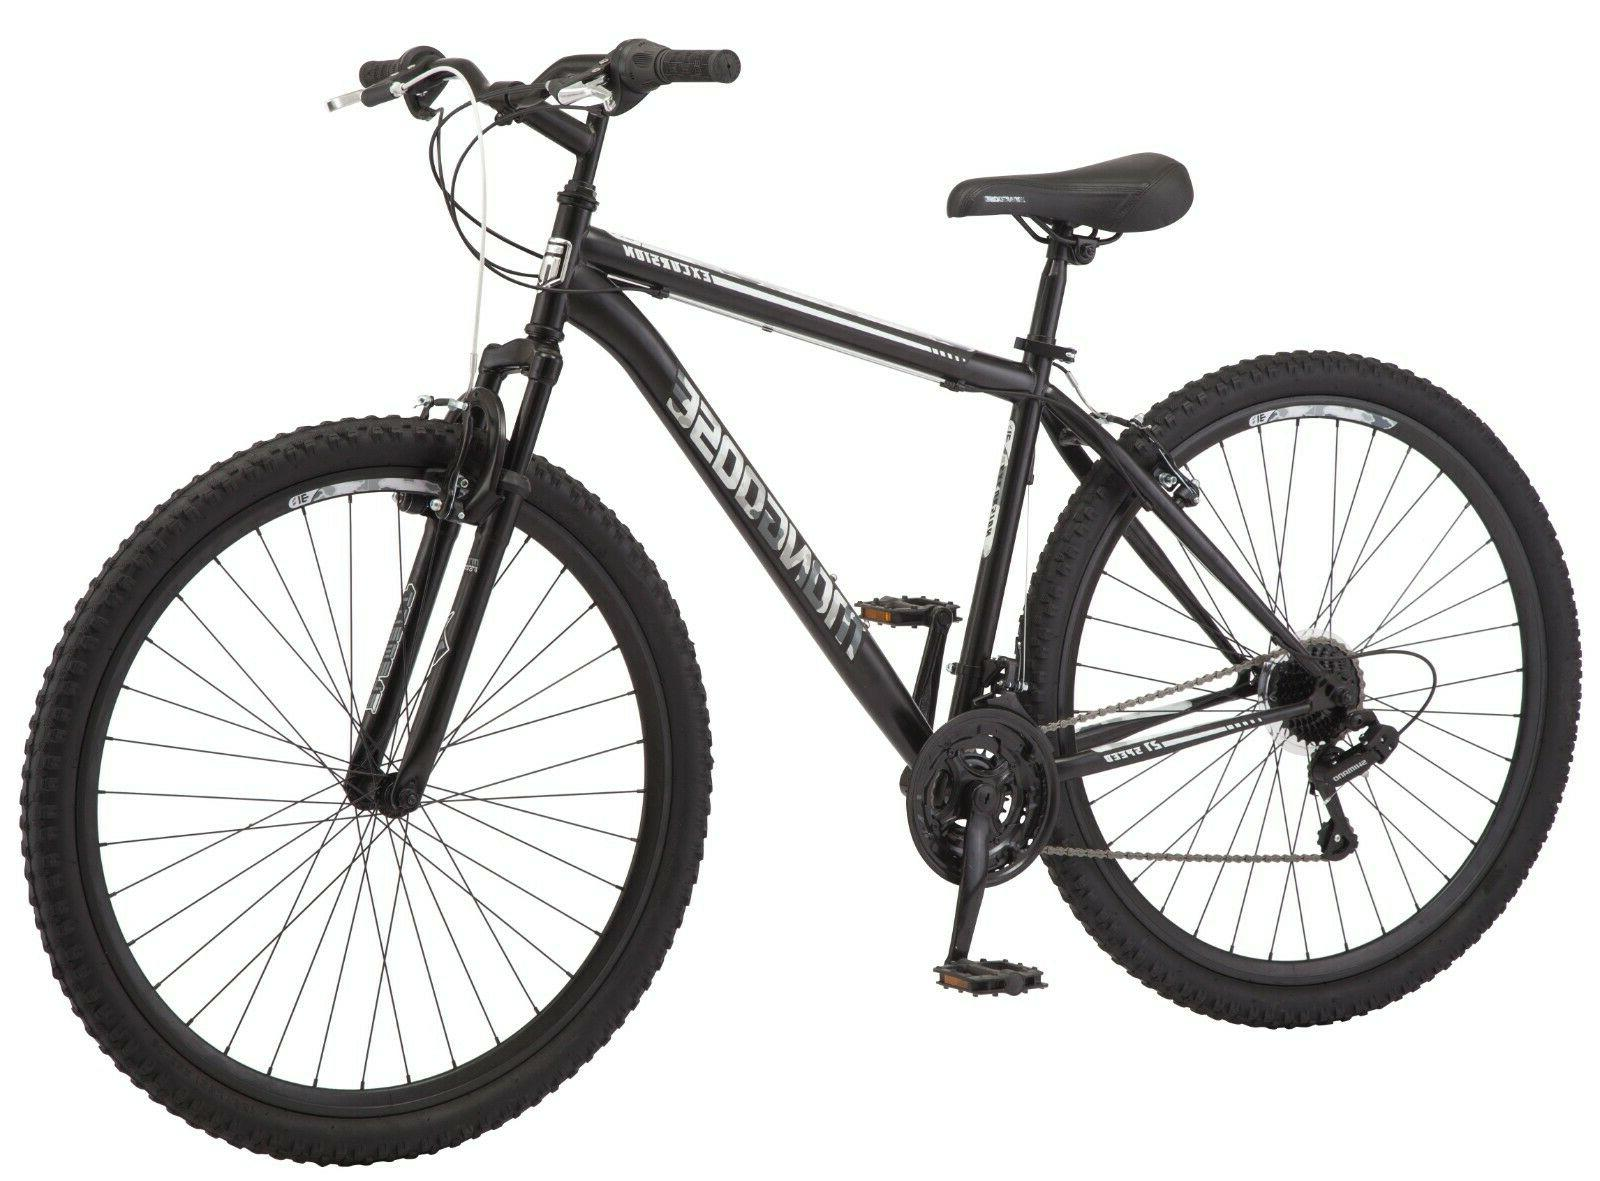 Mens Bike 21 Off Road Tires 29 Inch Bicycle XL